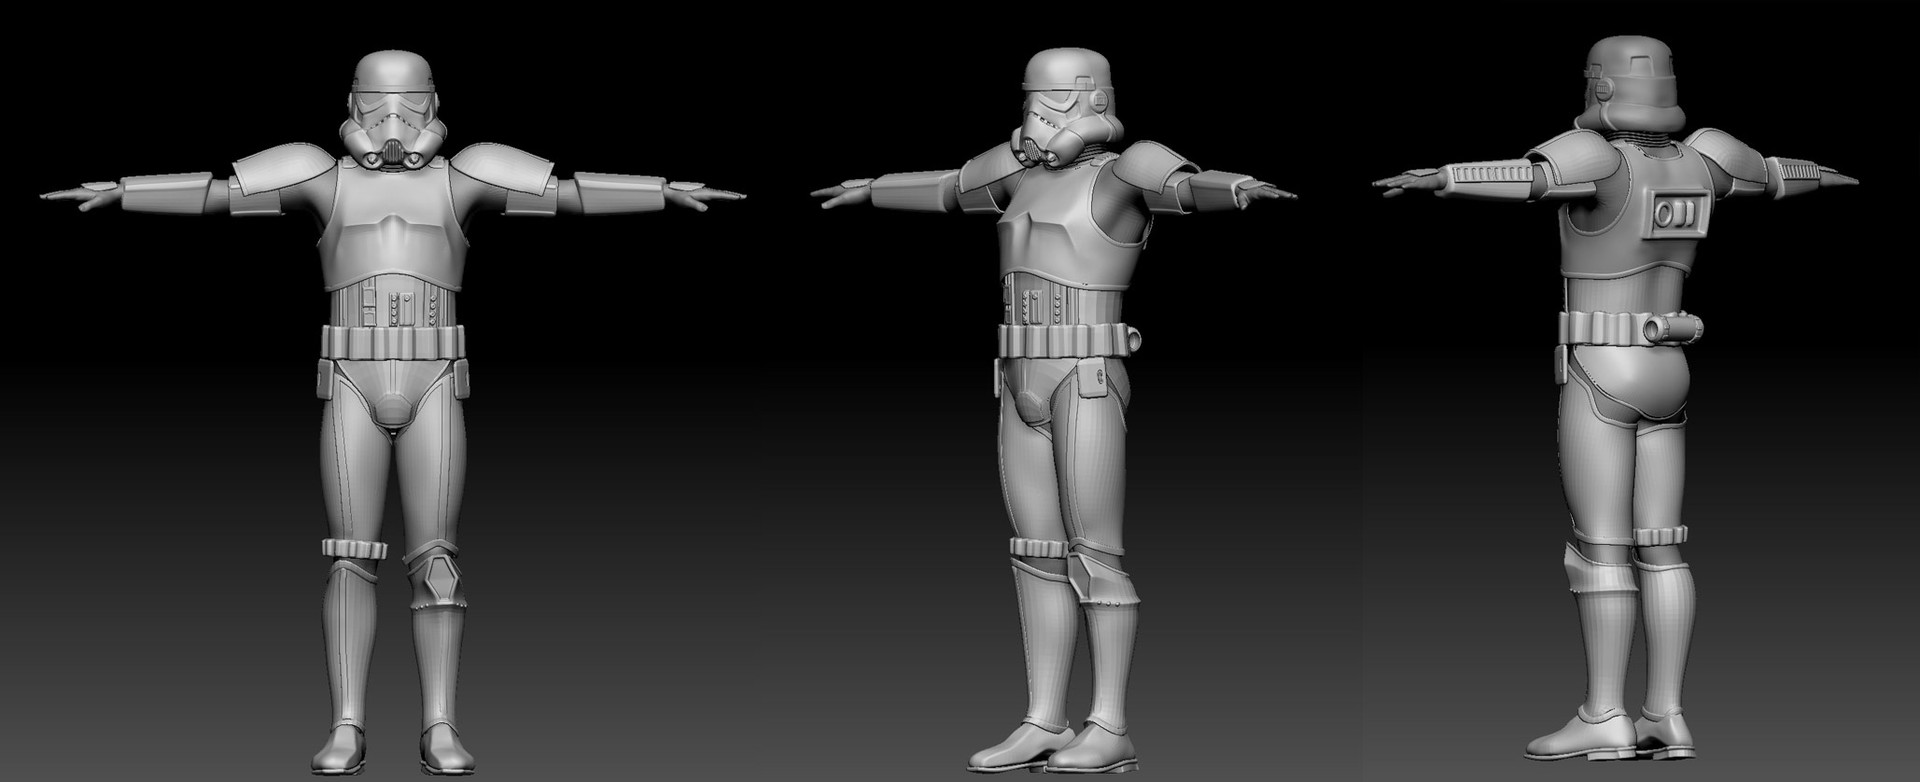 Storm trooper suit sculpt